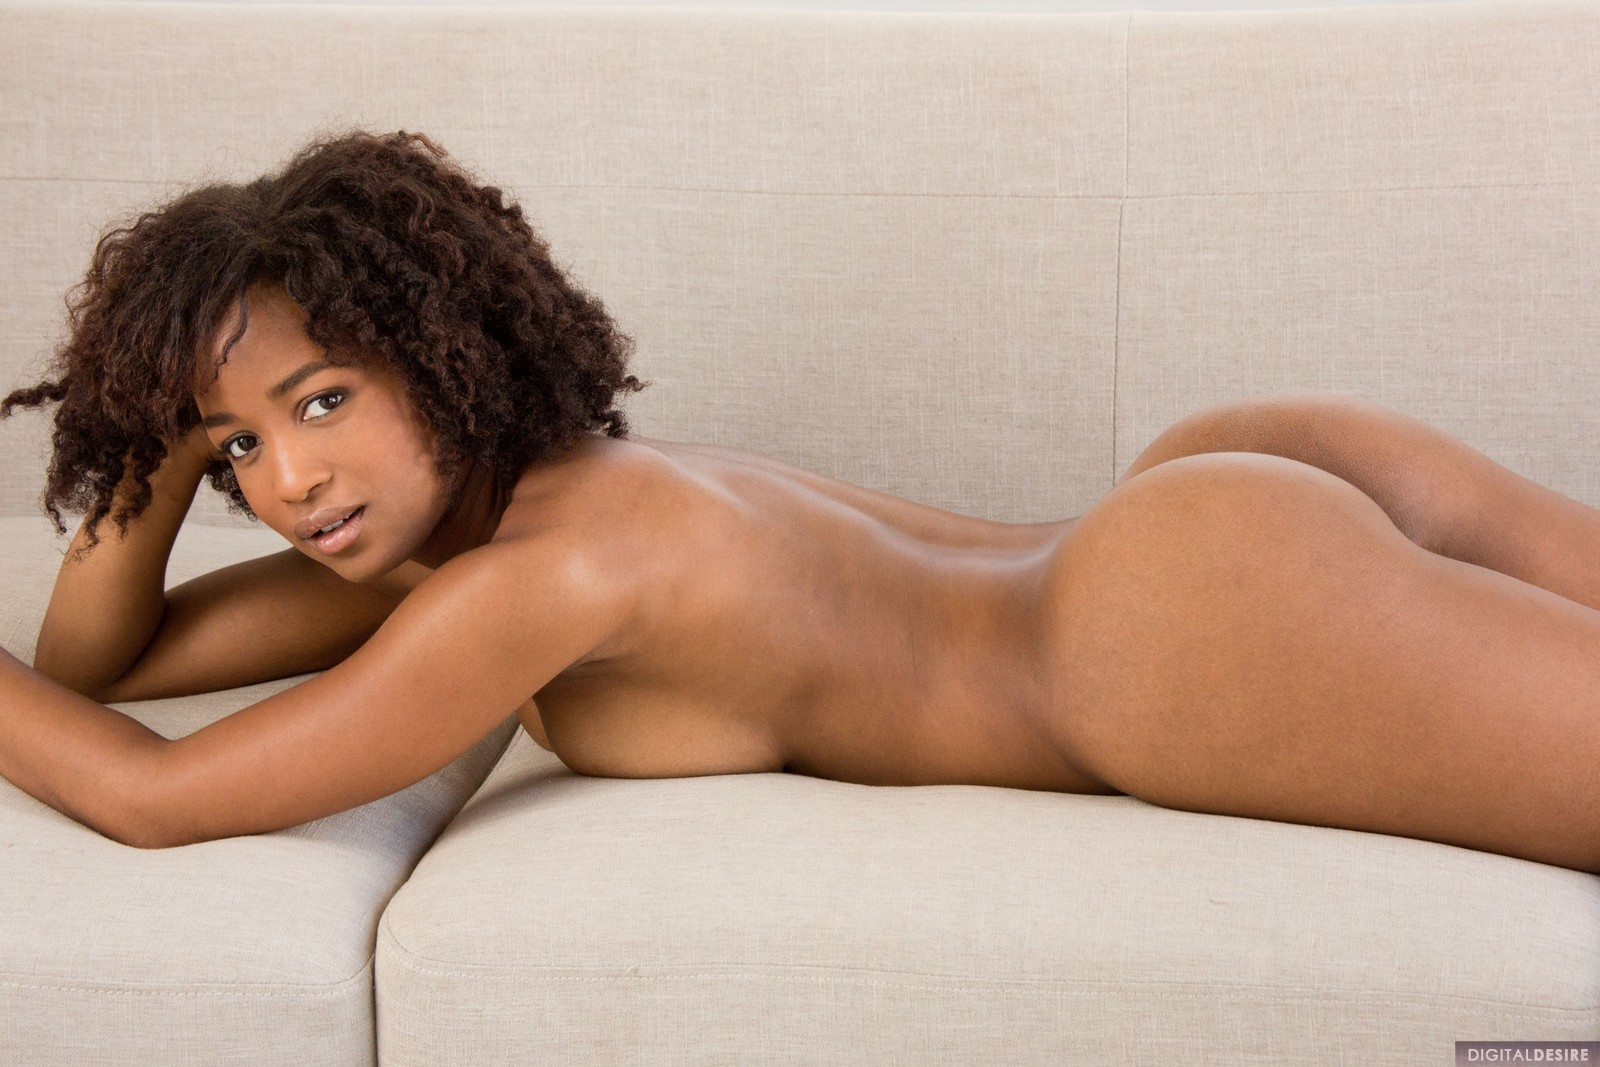 Ebony Twat Pictures And Sexy Black Girls Photos